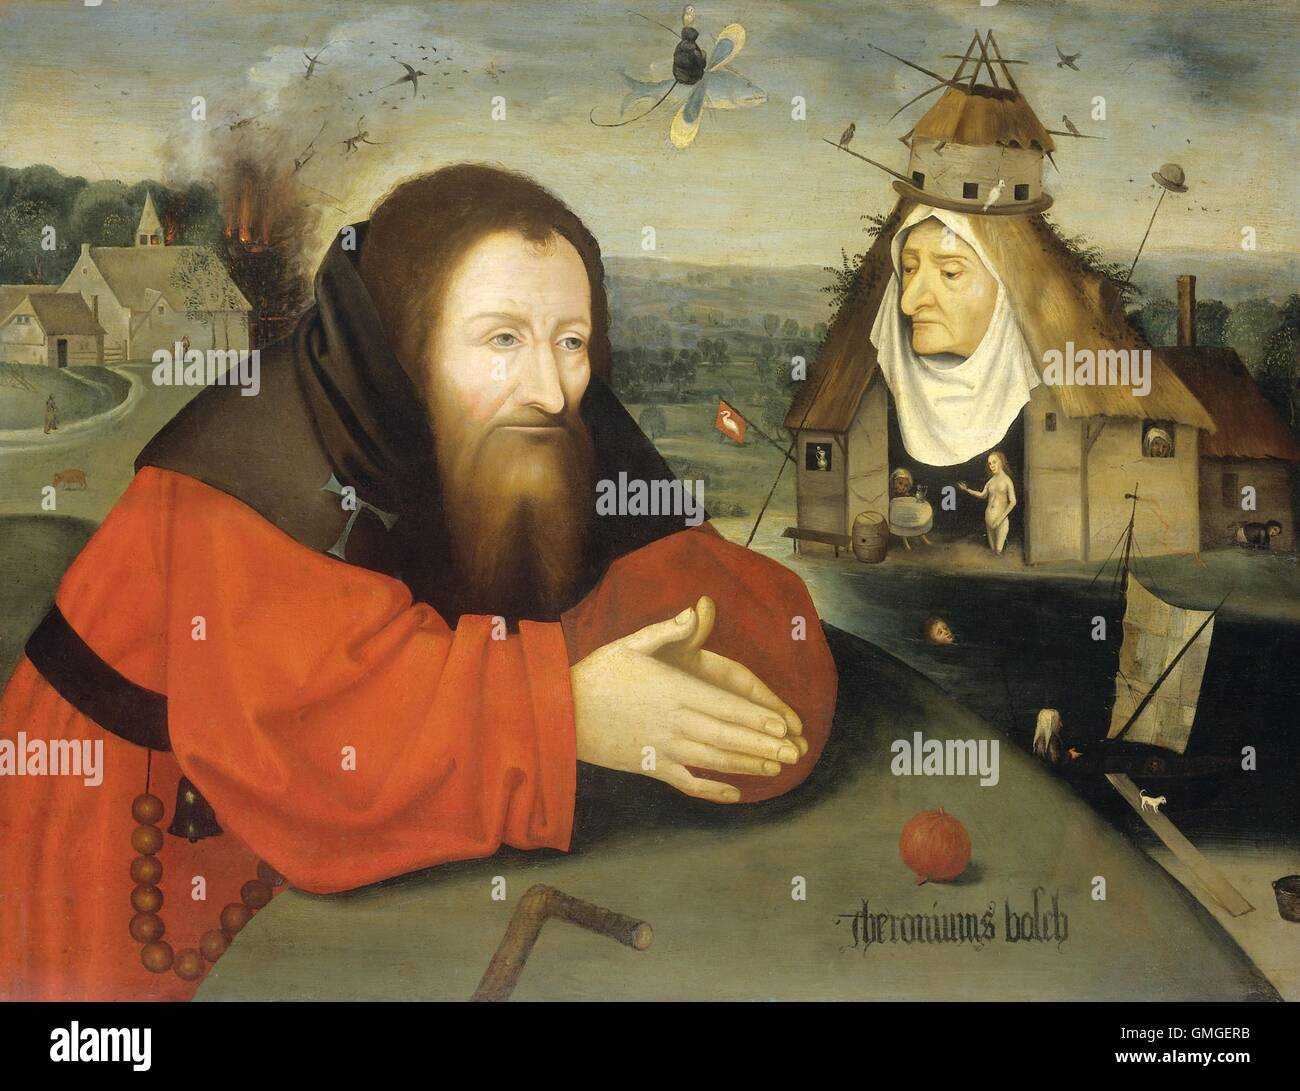 The temptation of st anthony by hieronymus bosch c 1530 1600 st anthony the hermit in prayer accompanied by bosch grotesques and netherlandish symbolism bsloc20166242 biocorpaavc